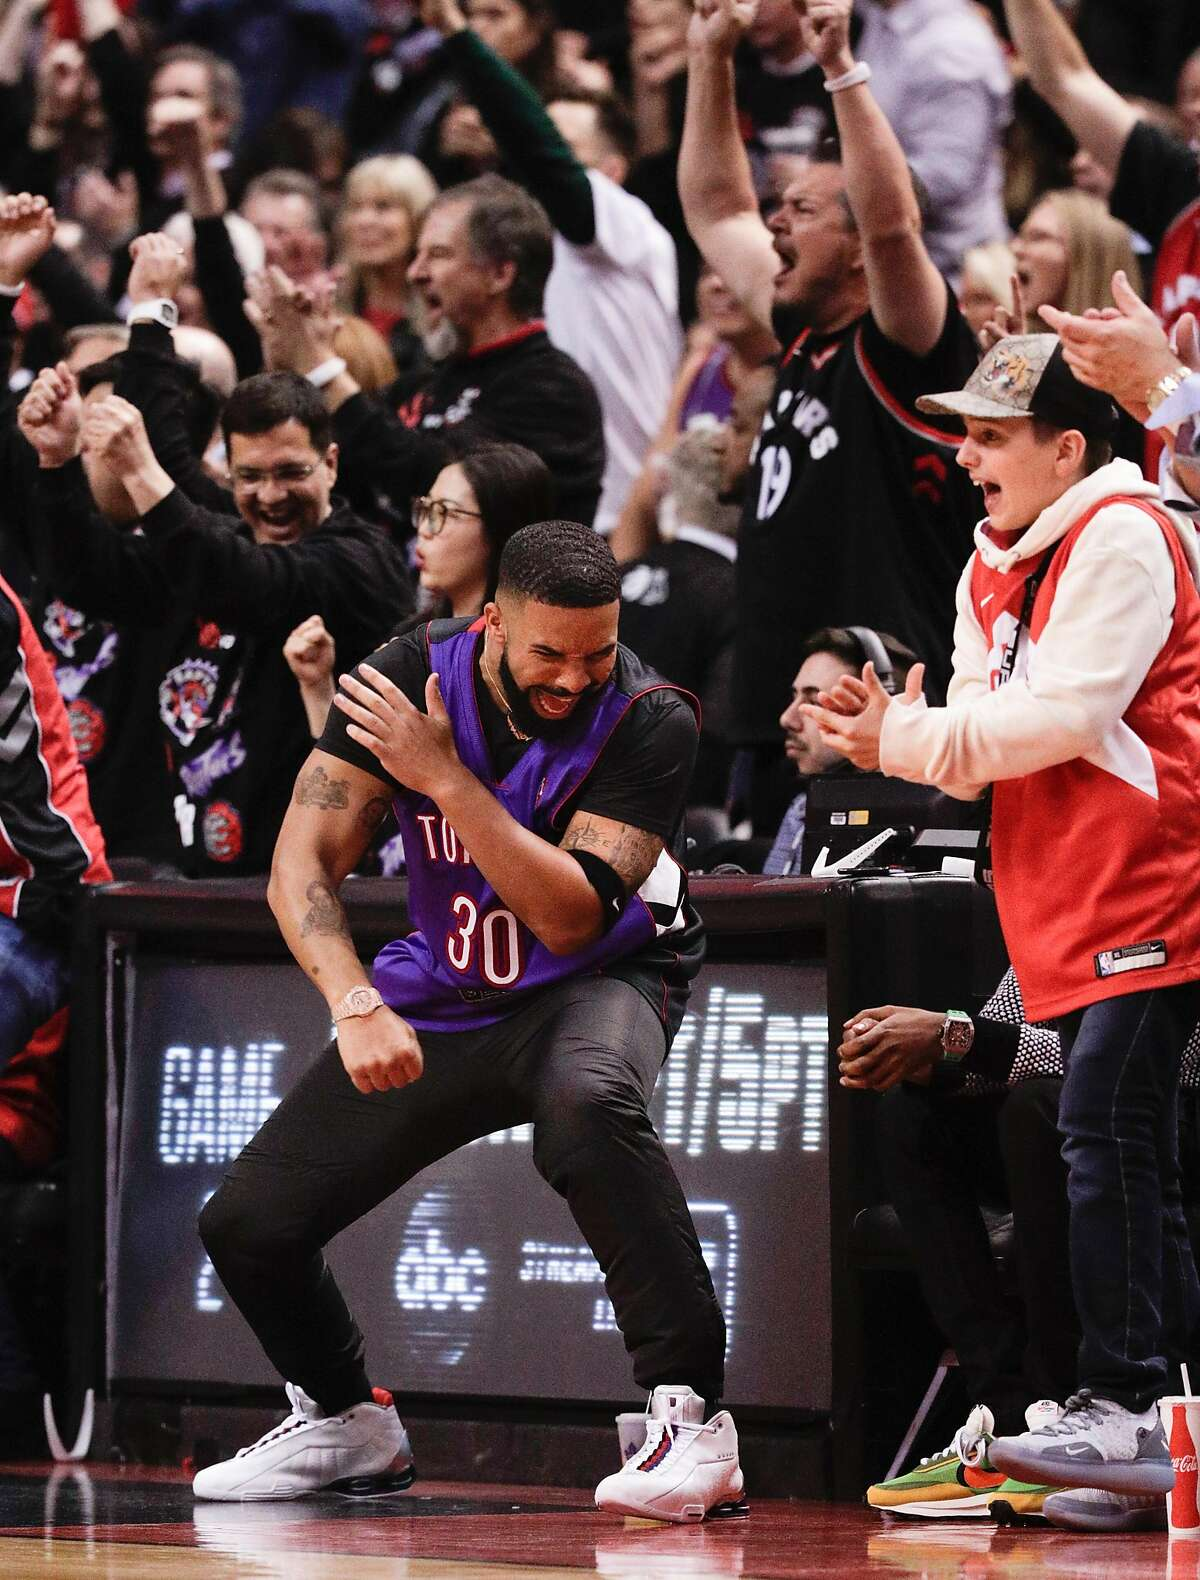 Drake reacts in the second quarter during game 1 of the NBA Finals between the Golden State Warriors and the Toronto Raptors at Scotiabank Arena on Thursday, May 30, 2019 in Toronto, Ontario, Canada.